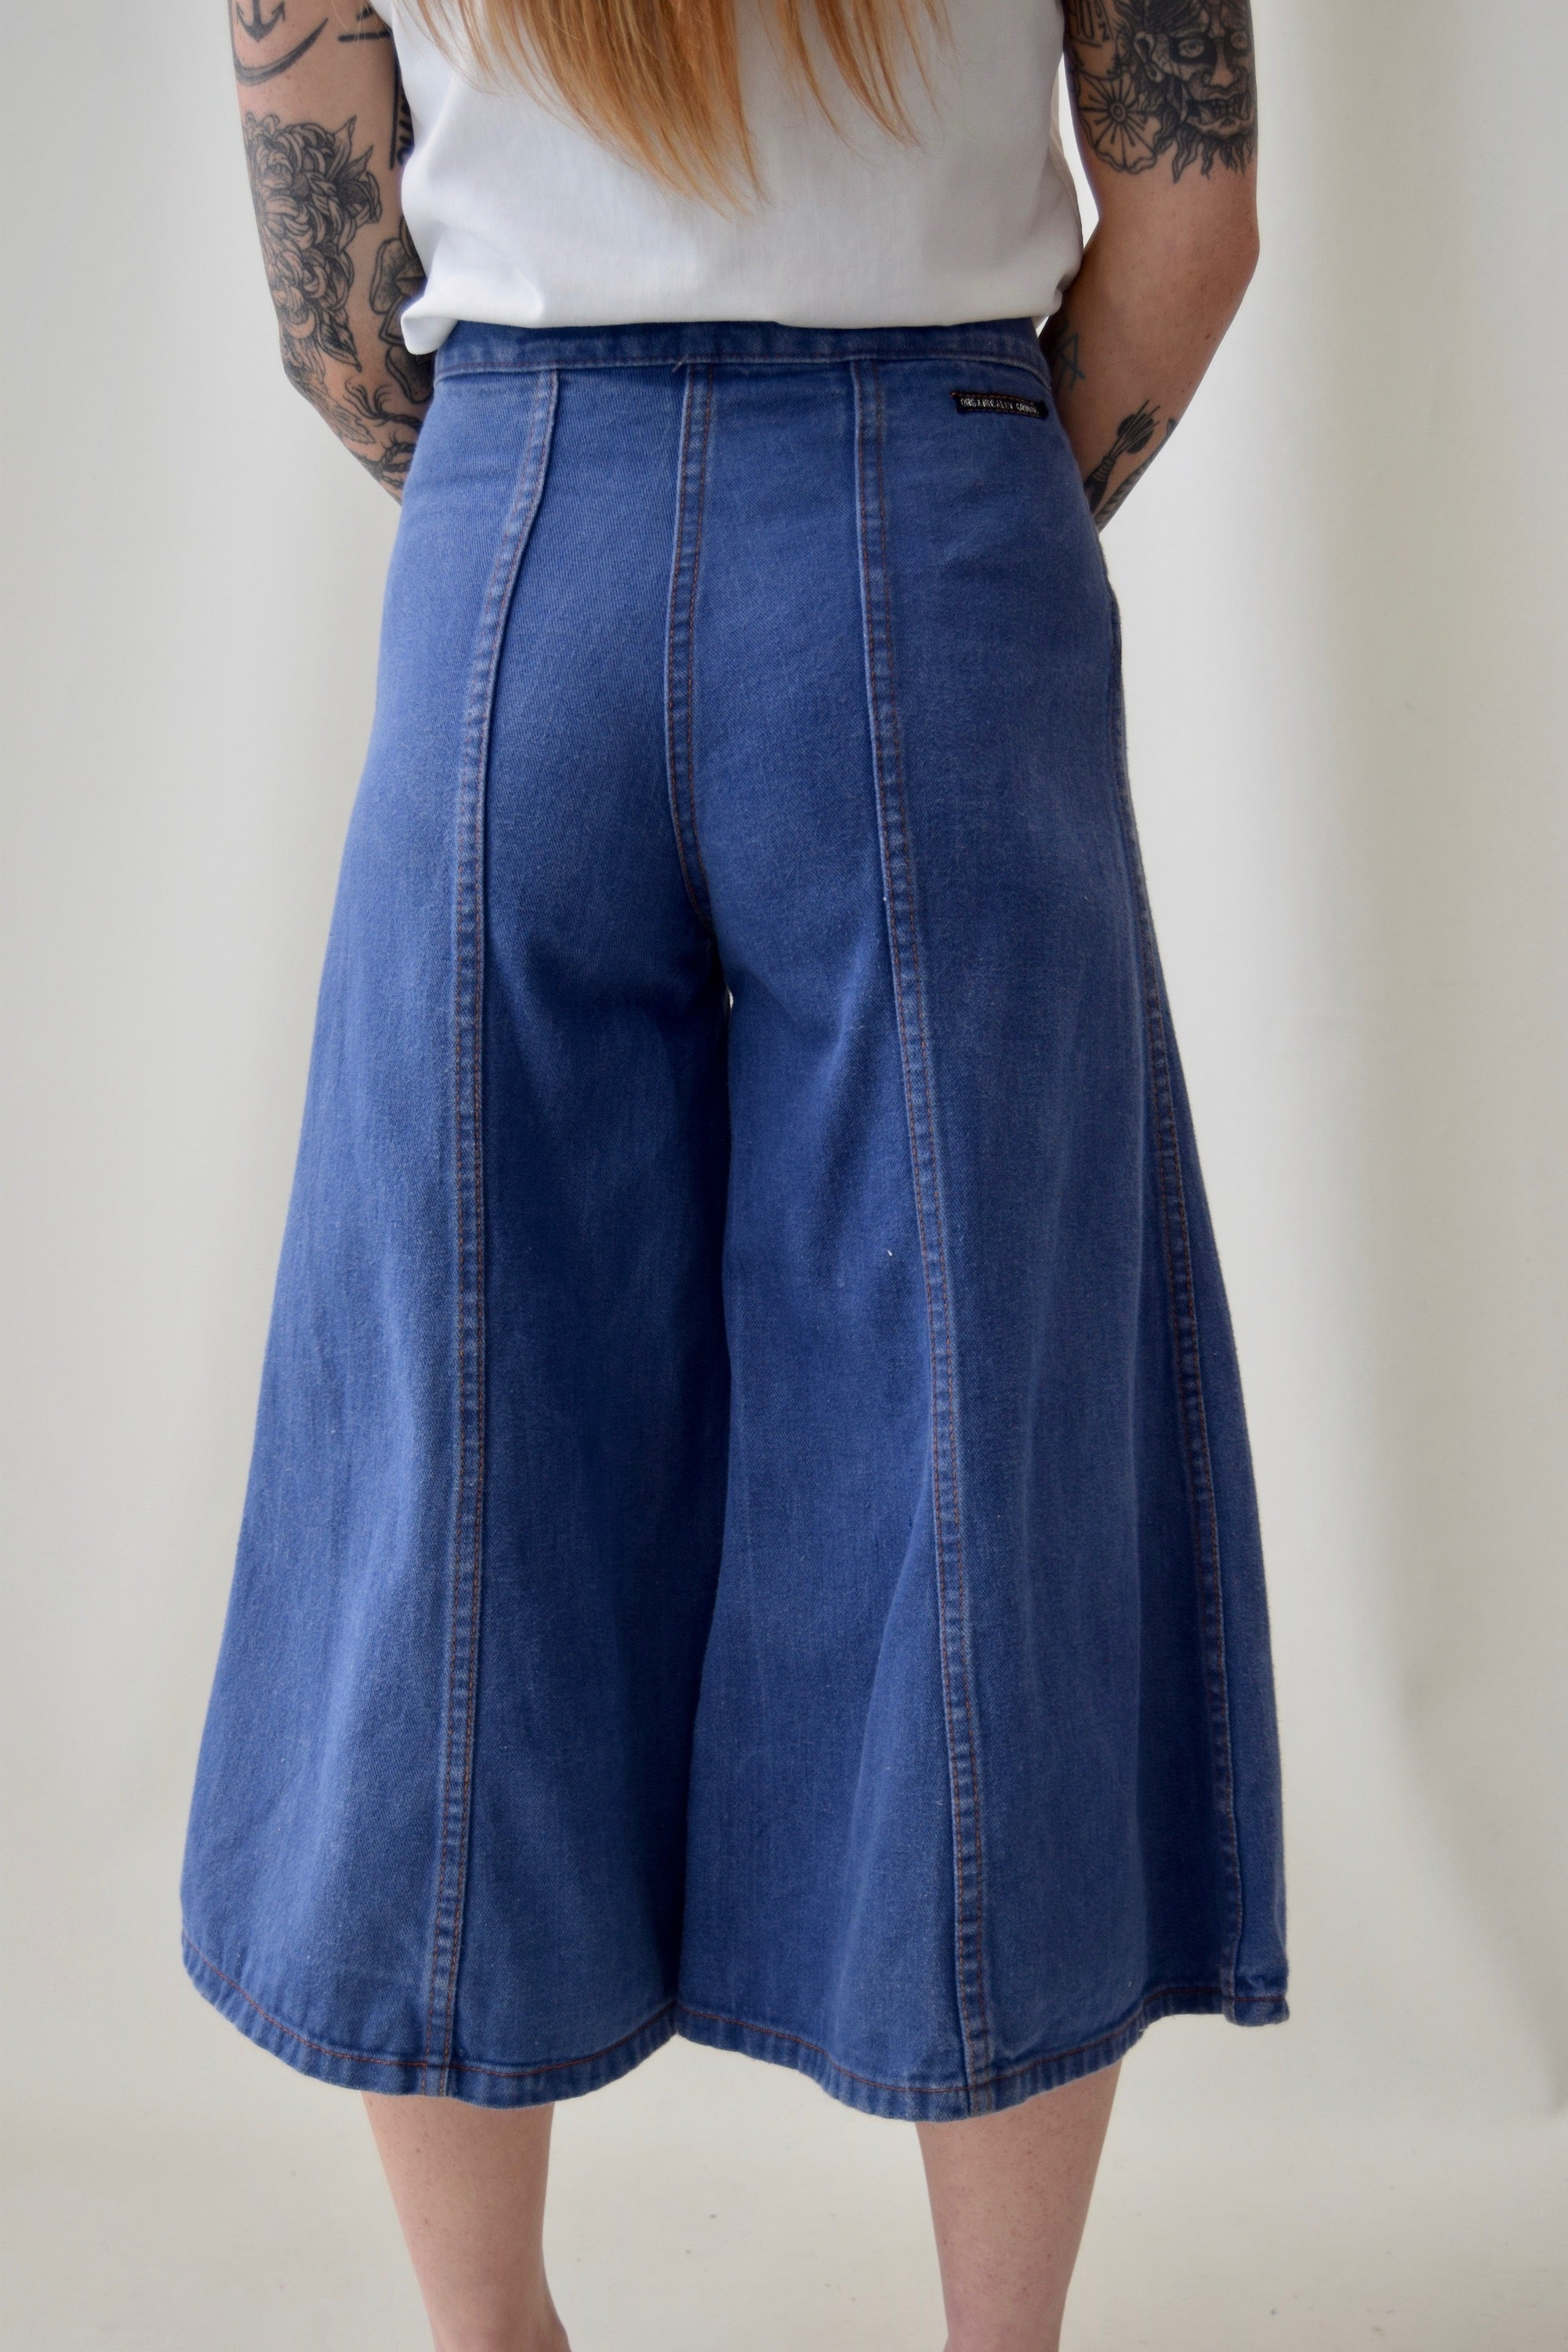 'Organically Grown' Denim Culottes